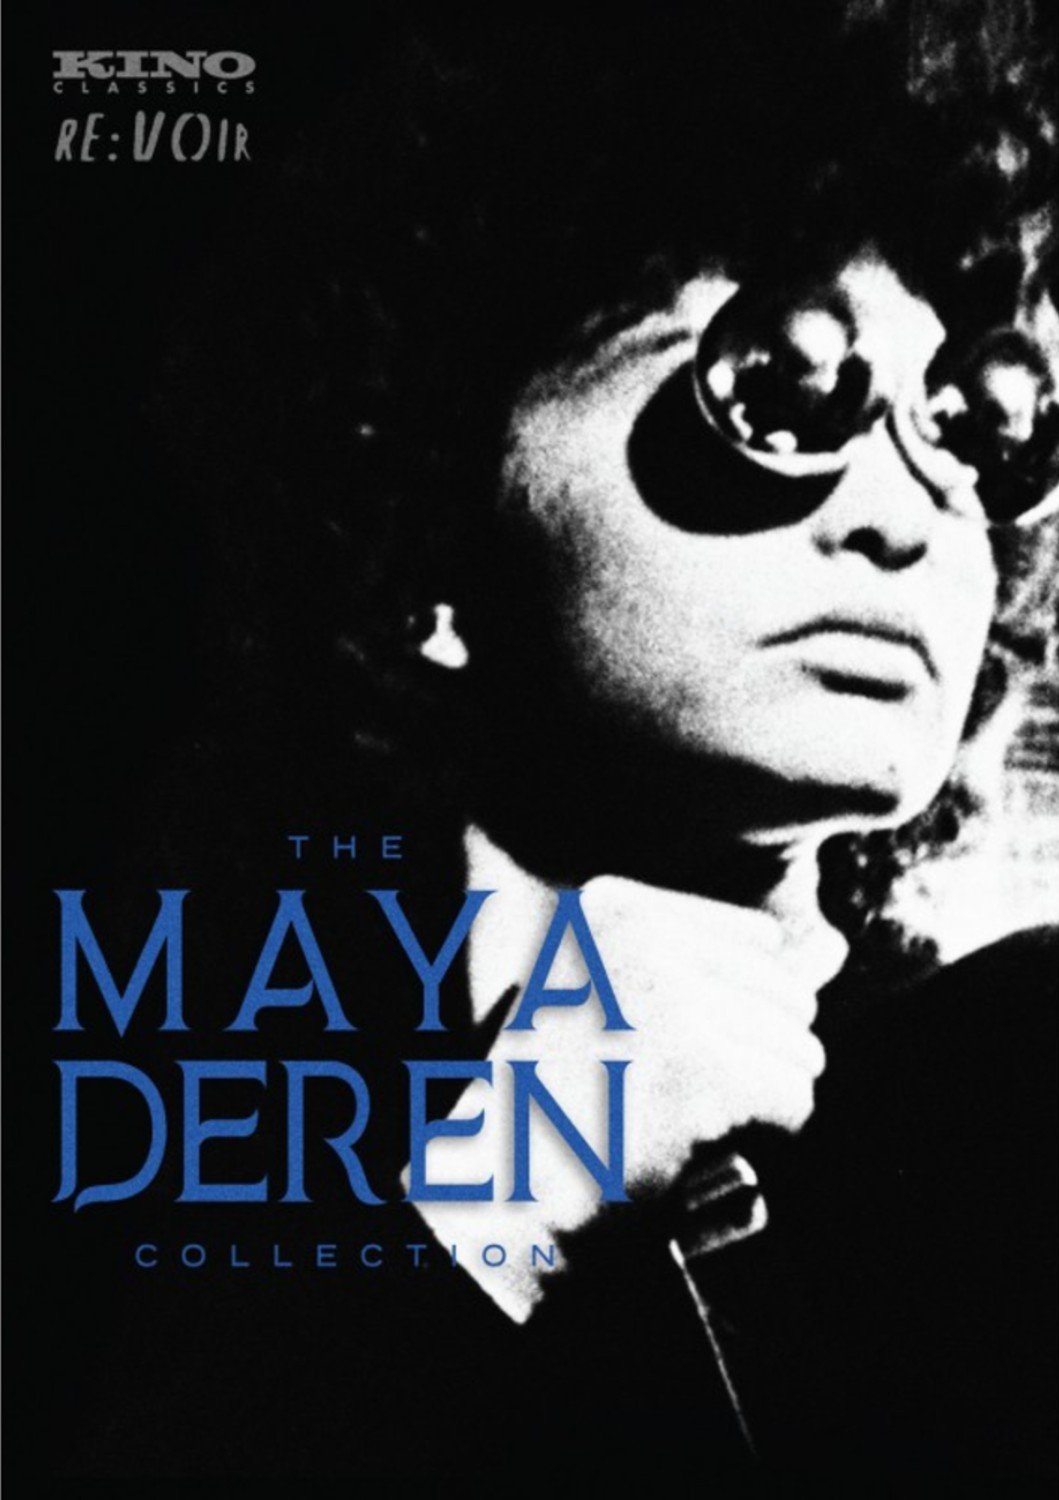 Buy The Maya Deren Collection (DVD)